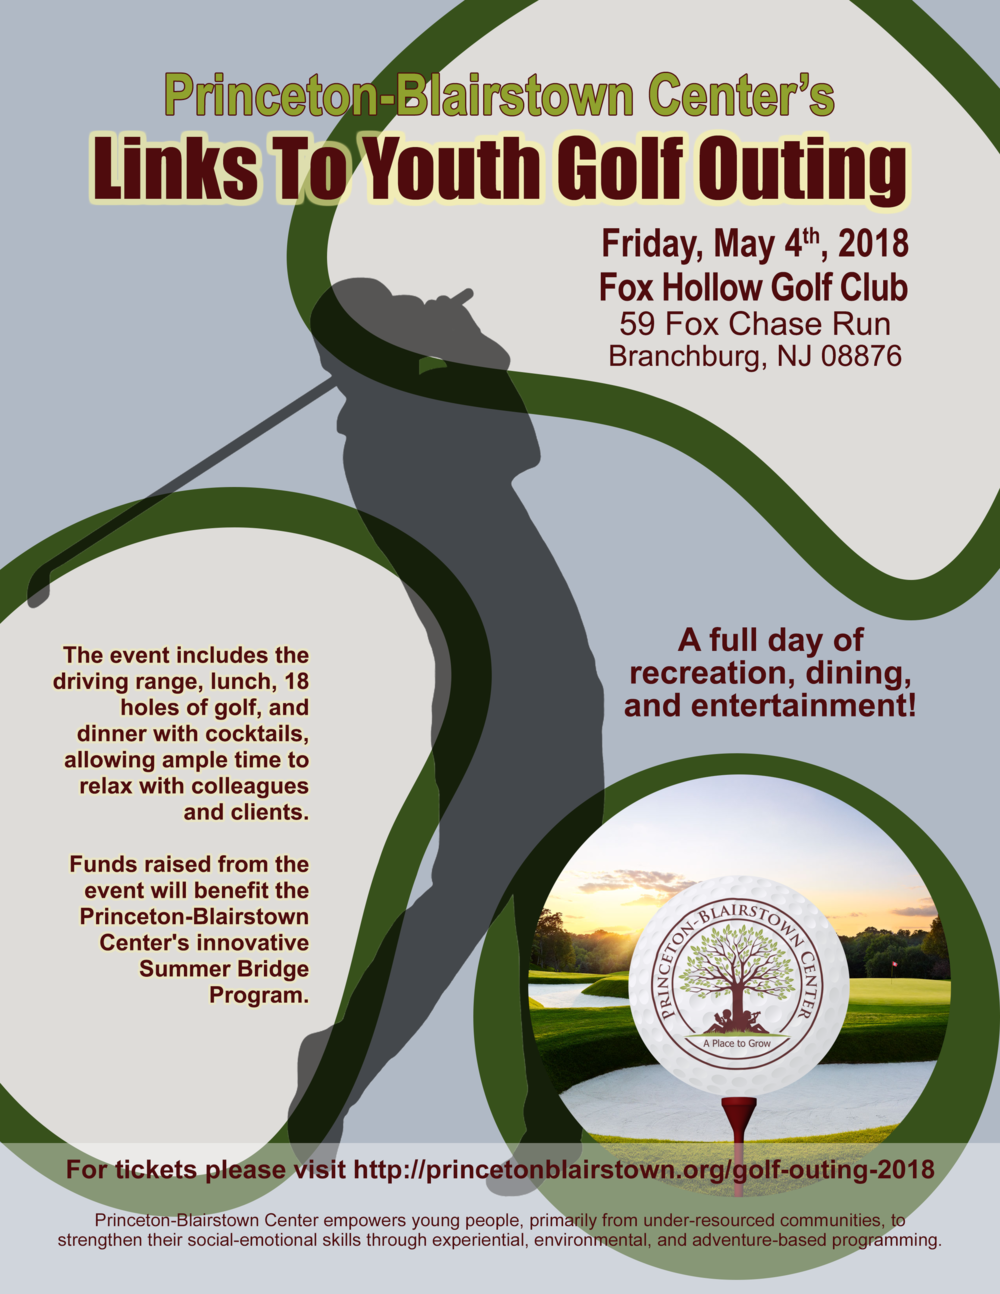 Links to Youth Golf Outing